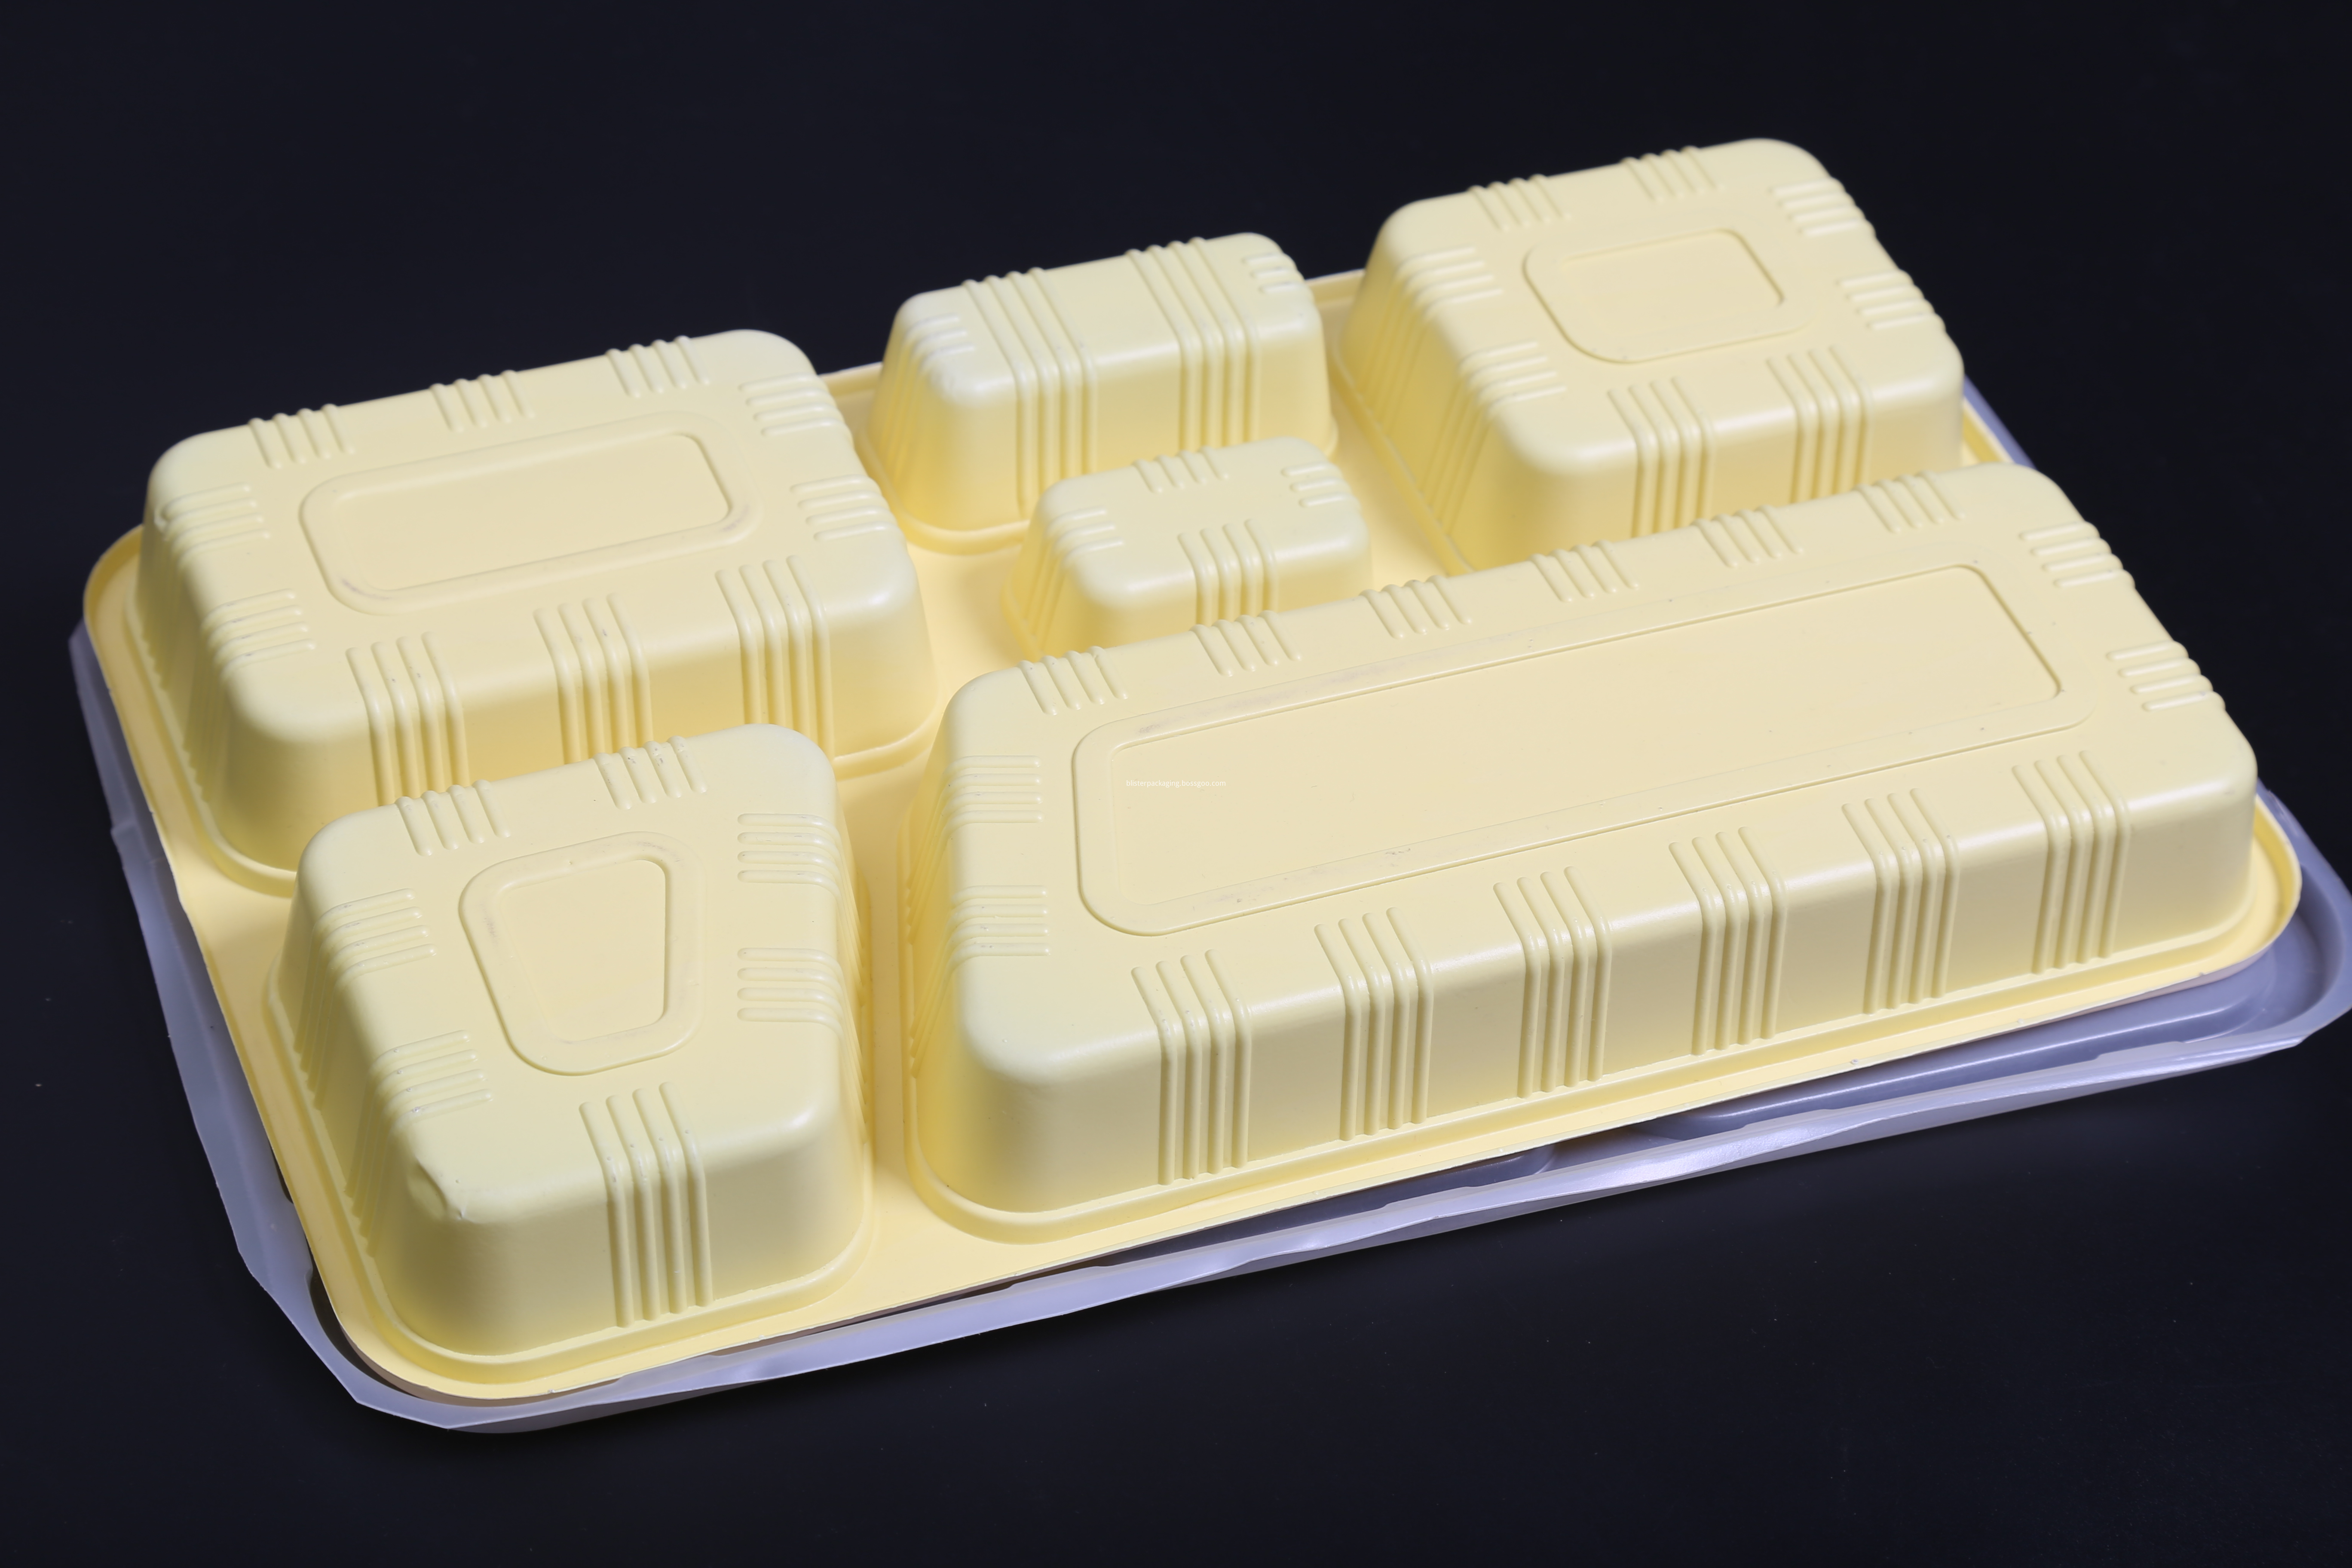 6 compartment food tray